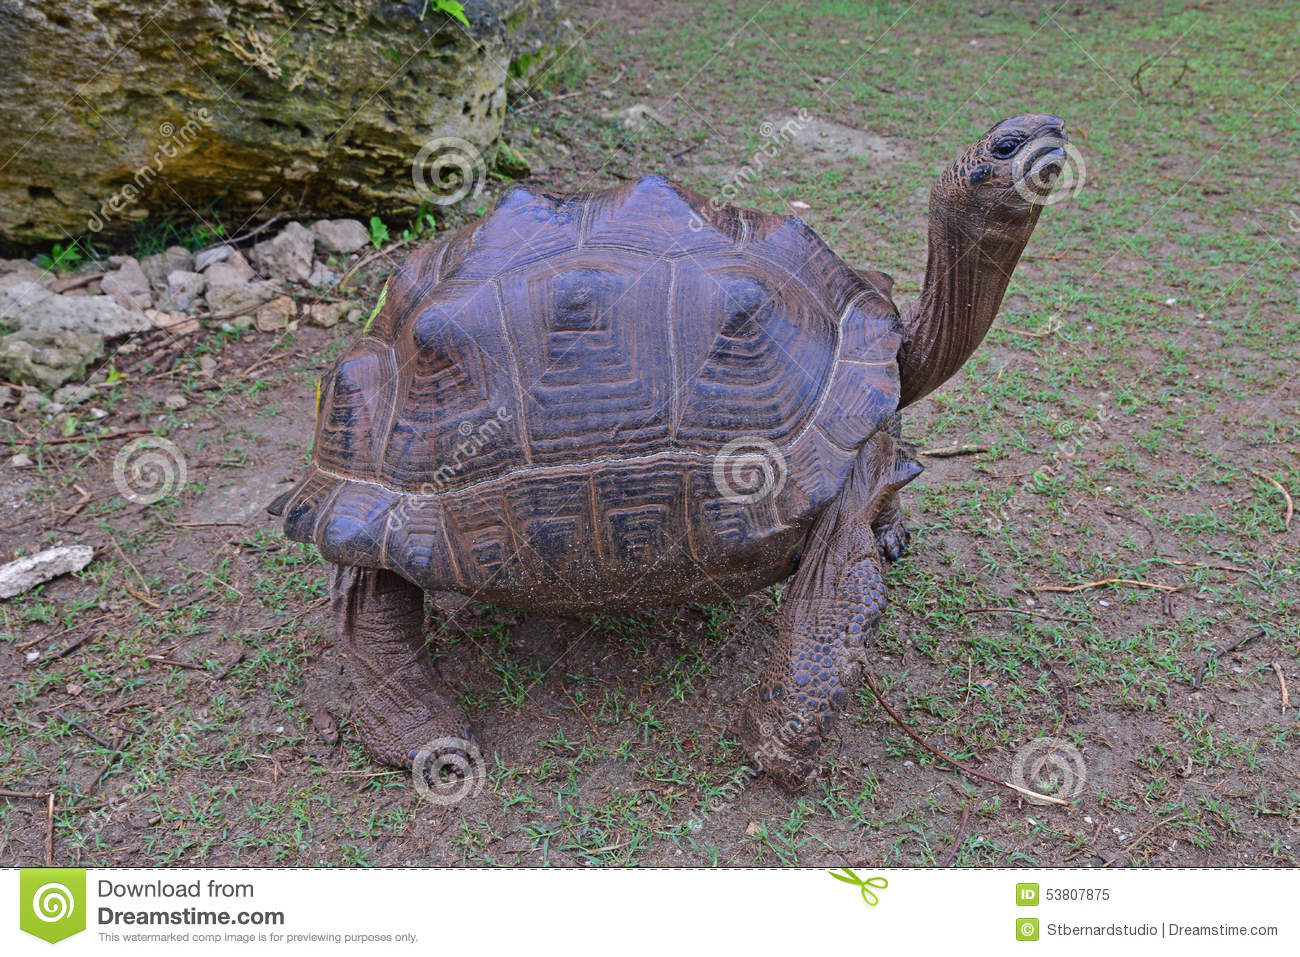 A standing Aldabra giant tortoise with her four strong legs